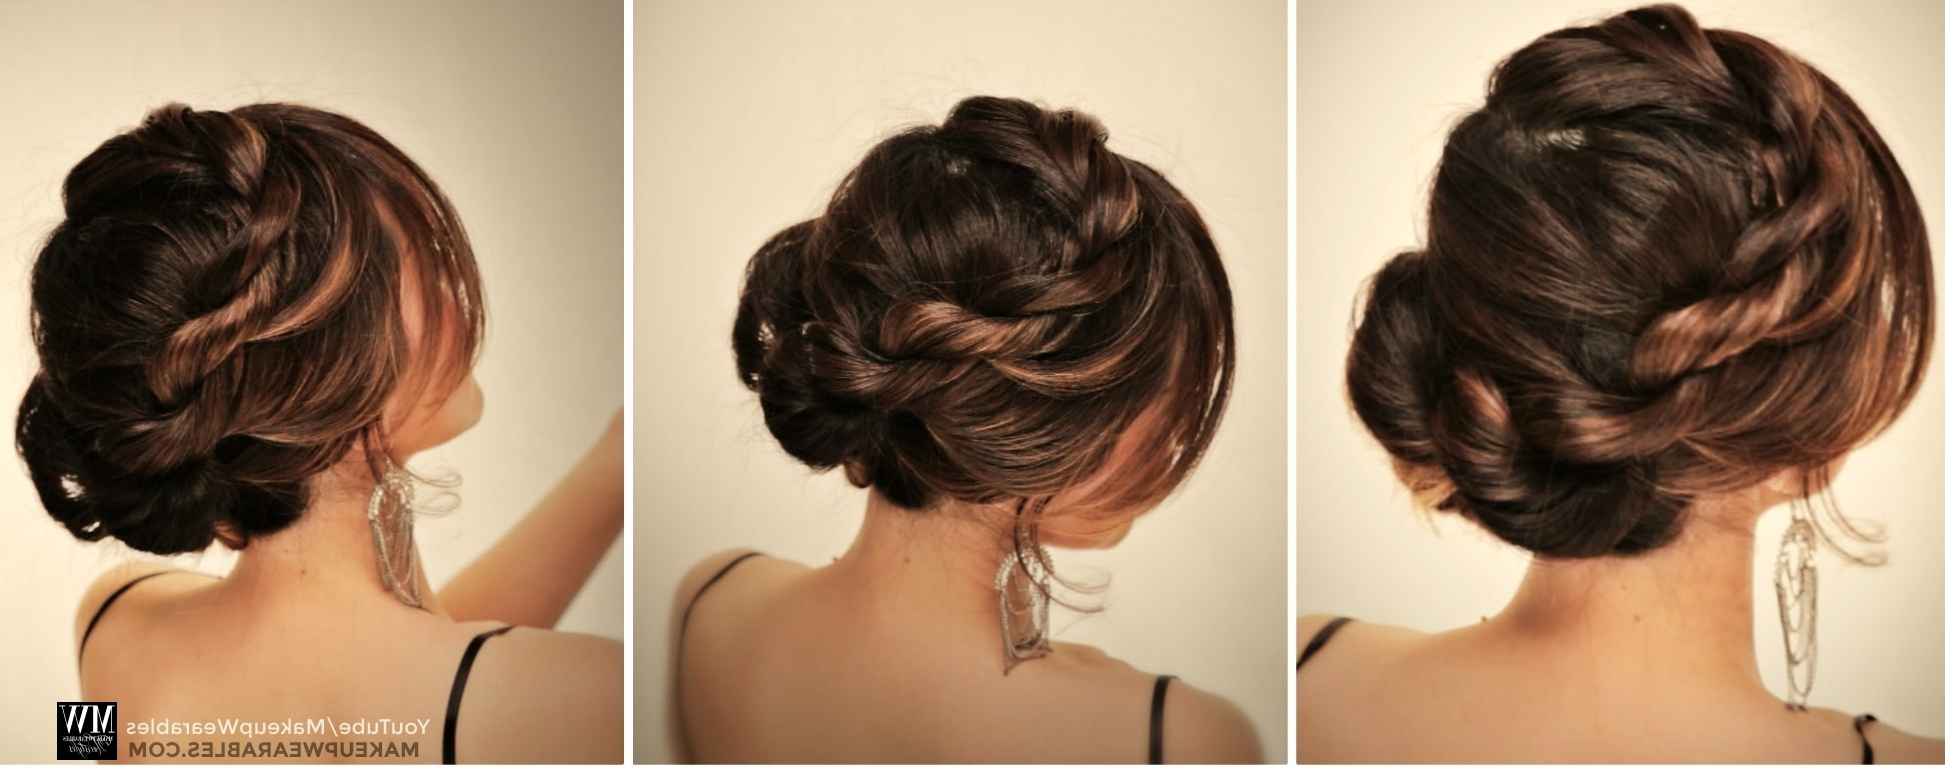 How To: 5 Amazingly Cute + Easy Hairstyles With A Simple Twist Inside Quick Messy Bun Updo Hairstyles (View 6 of 15)